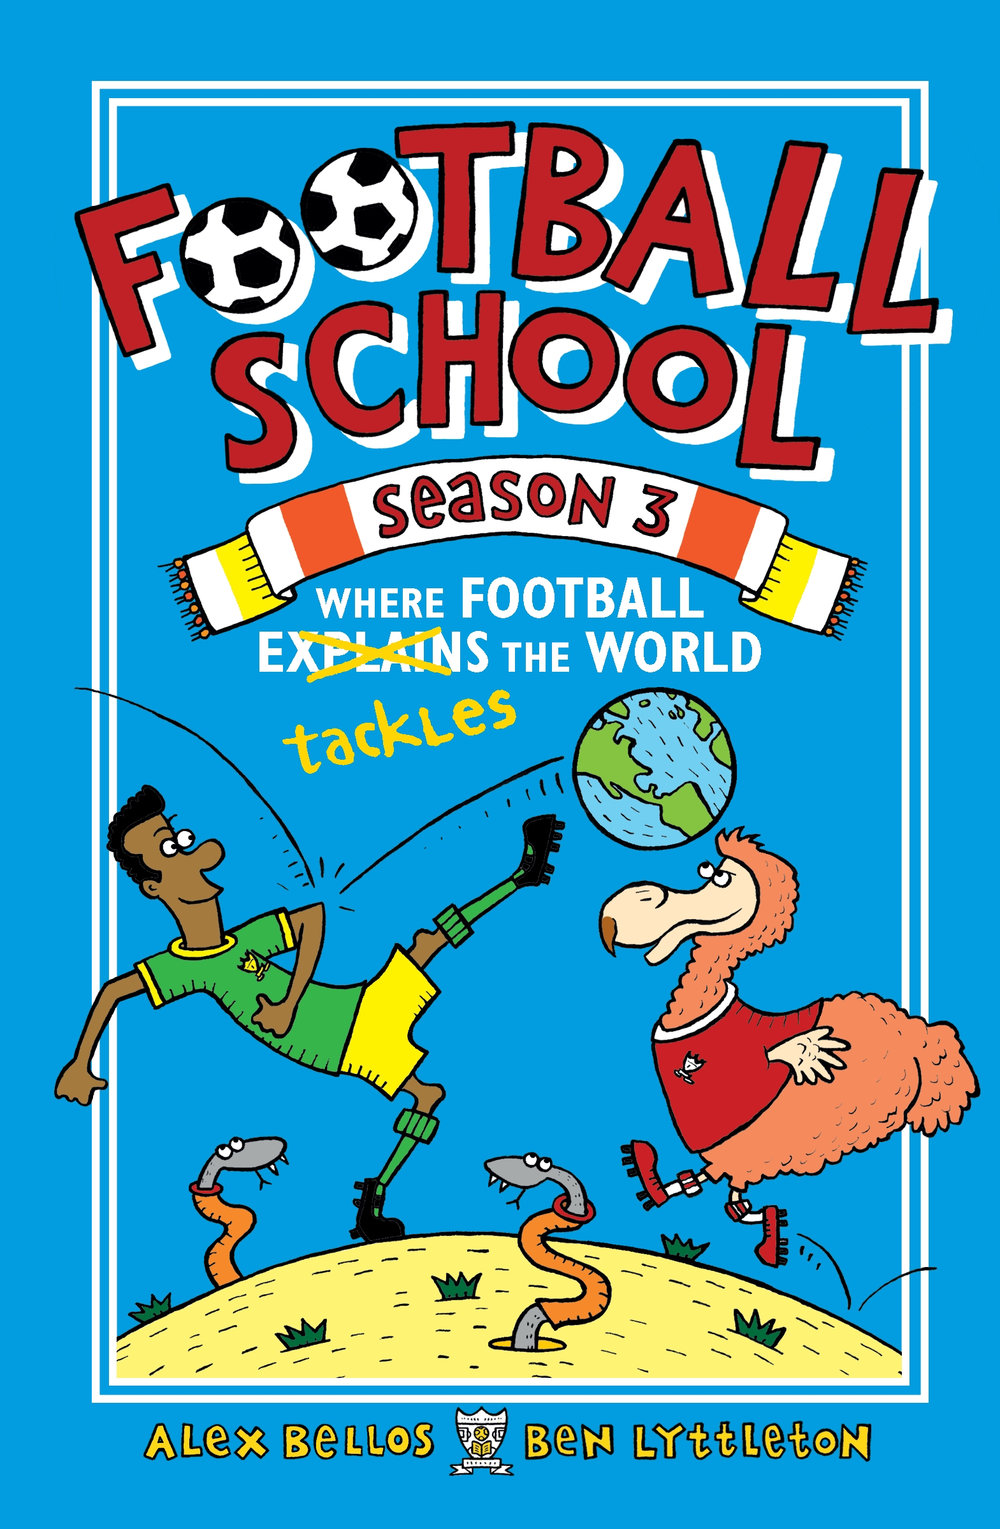 Football Season 3 cover .jpg